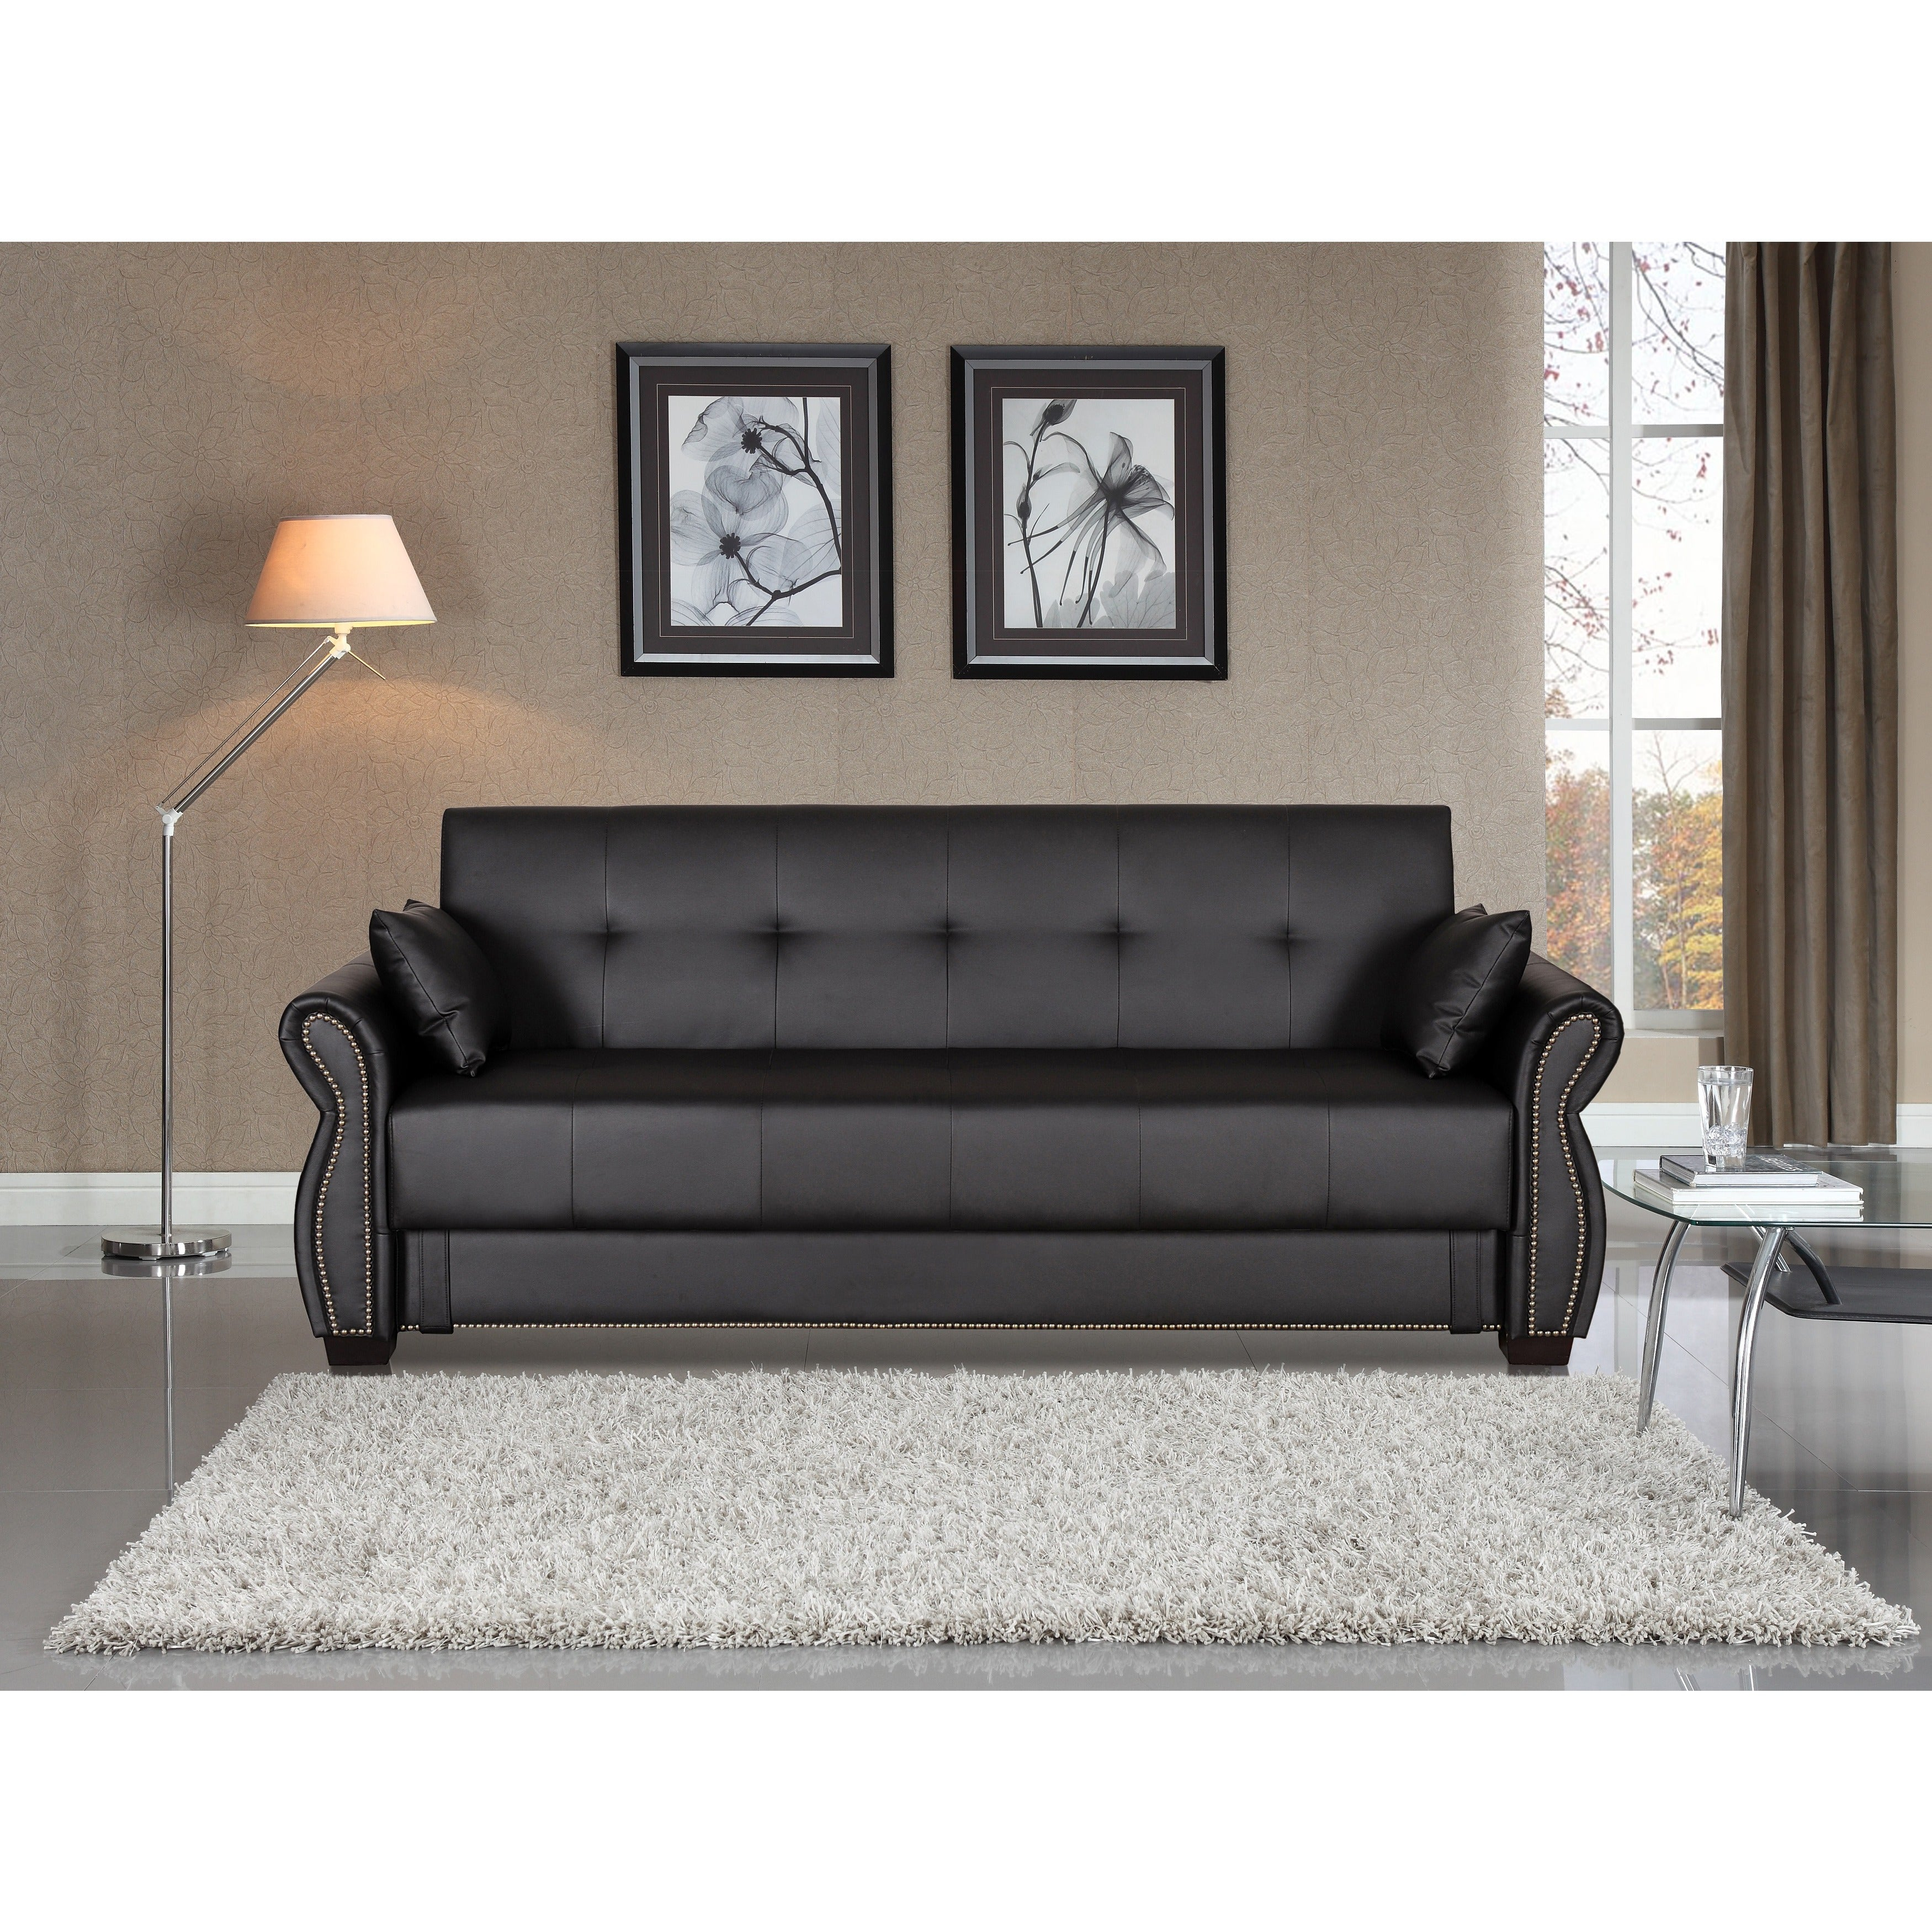 Serta Ainsley Faux Leather/Foam Convertible Sofa with Wood Frame